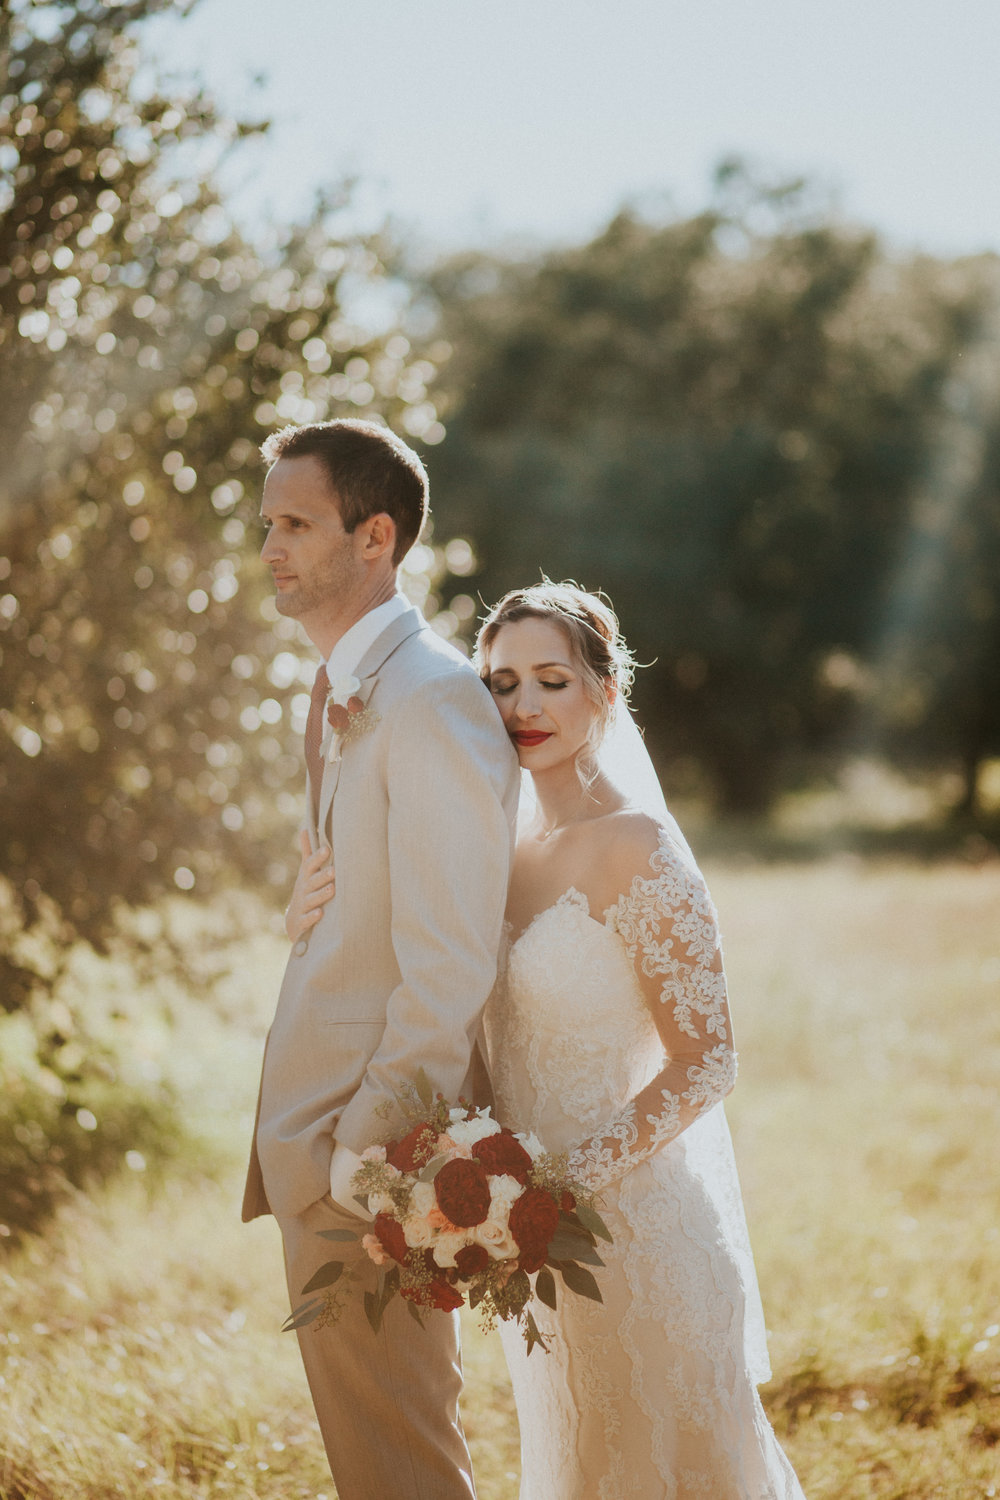 Hill_Wedding_Bridals-40.jpg